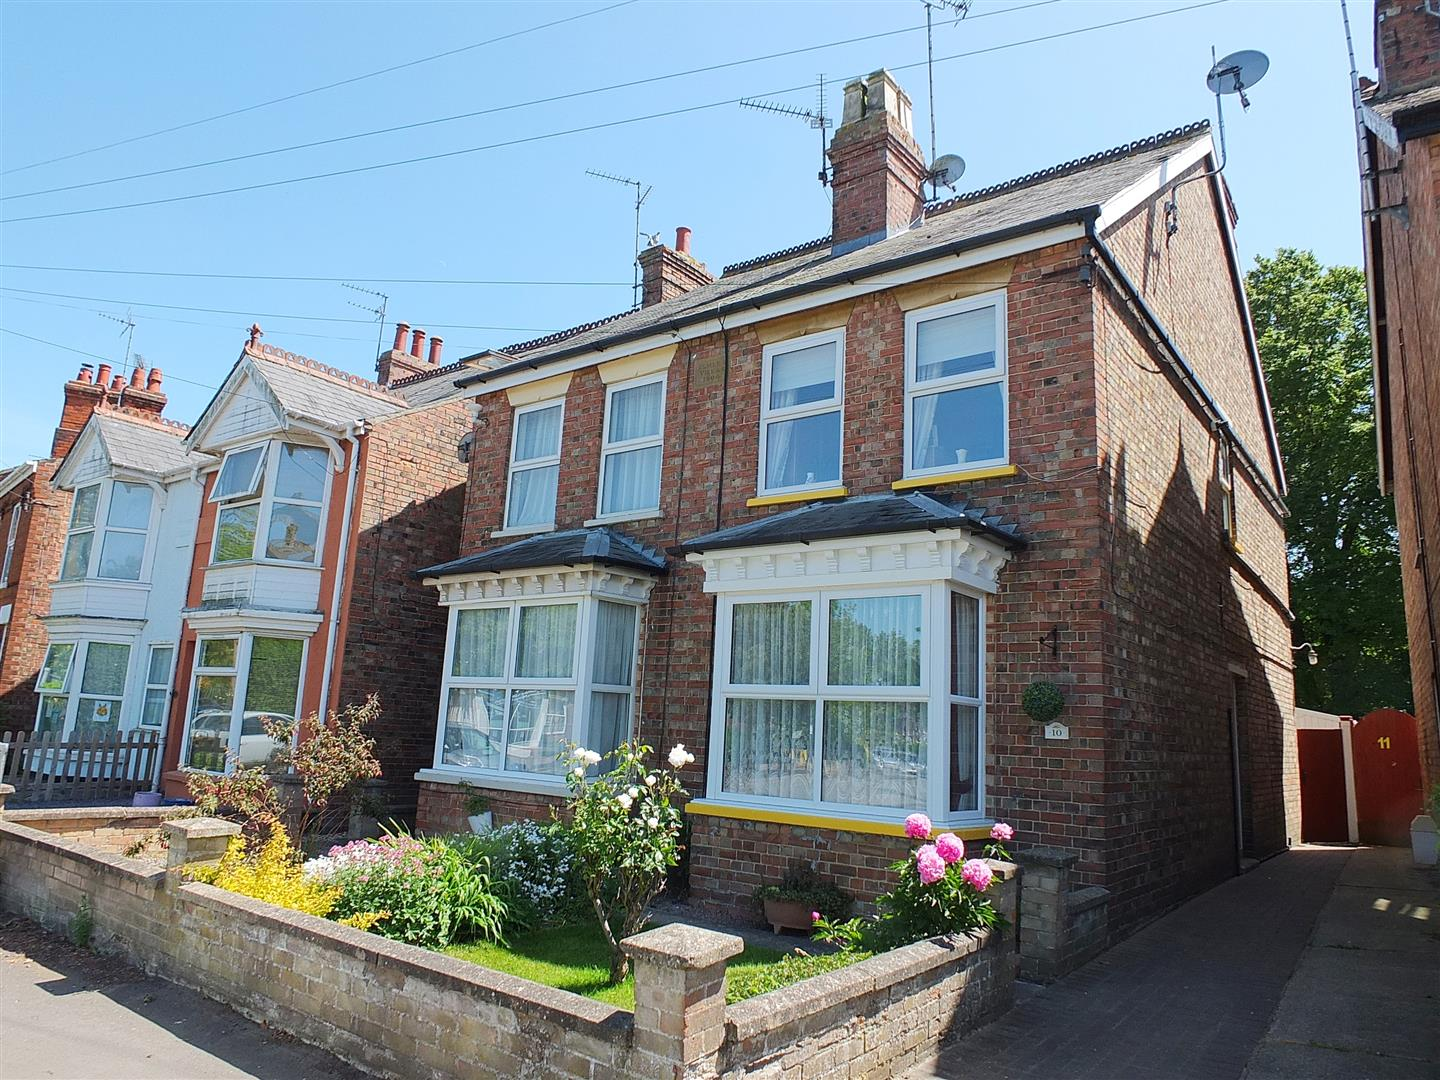 3 bed semi-detached house for sale in Long Sutton Spalding, PE12 9HB, PE12